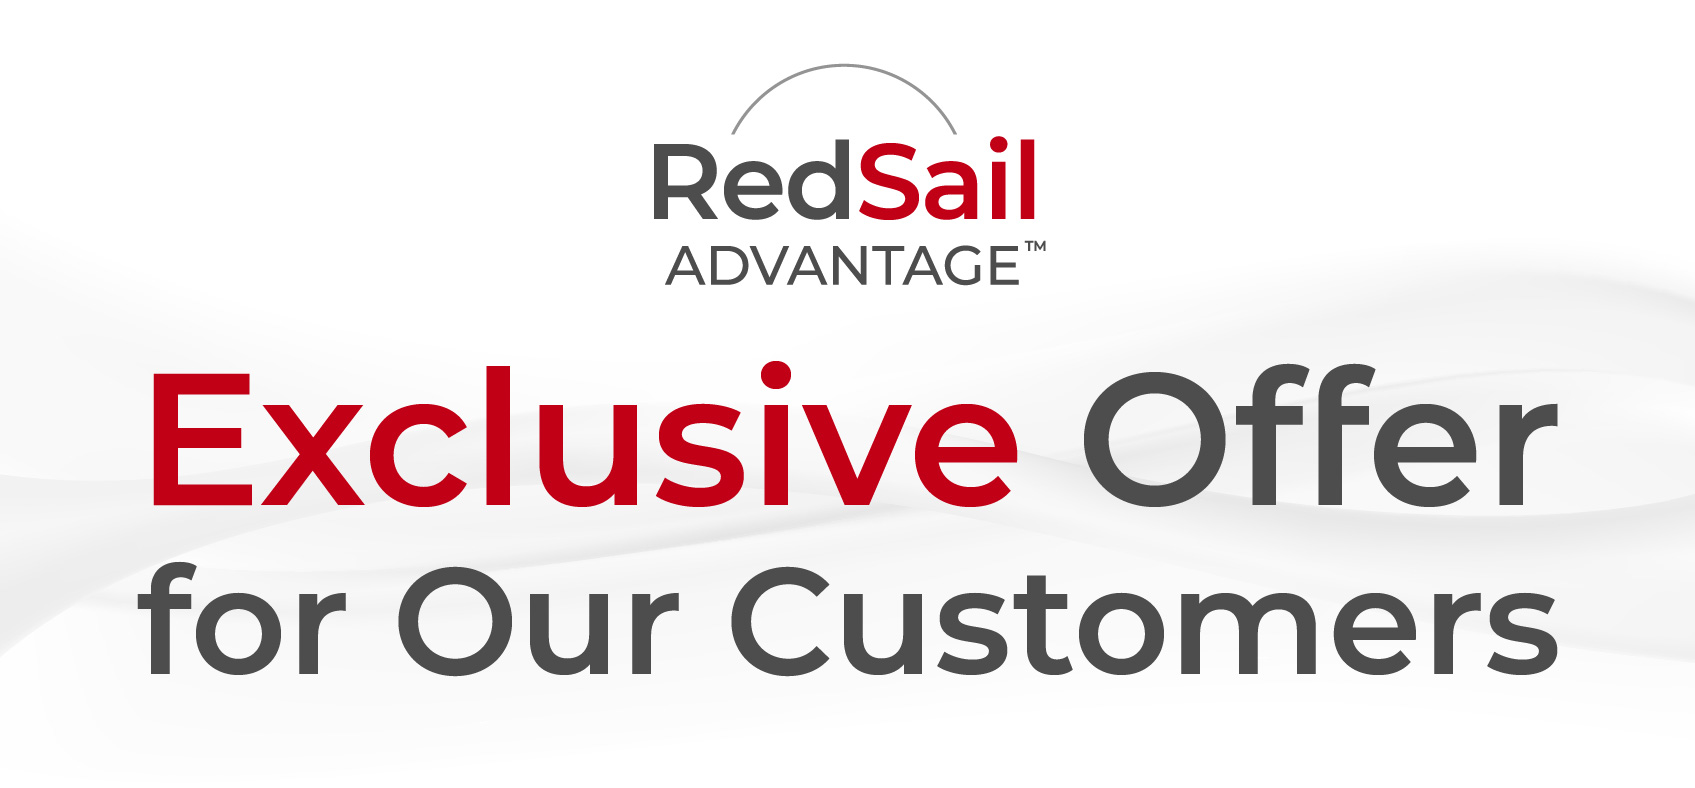 RedSail Advantage: Exclusive Offer for Our Customers